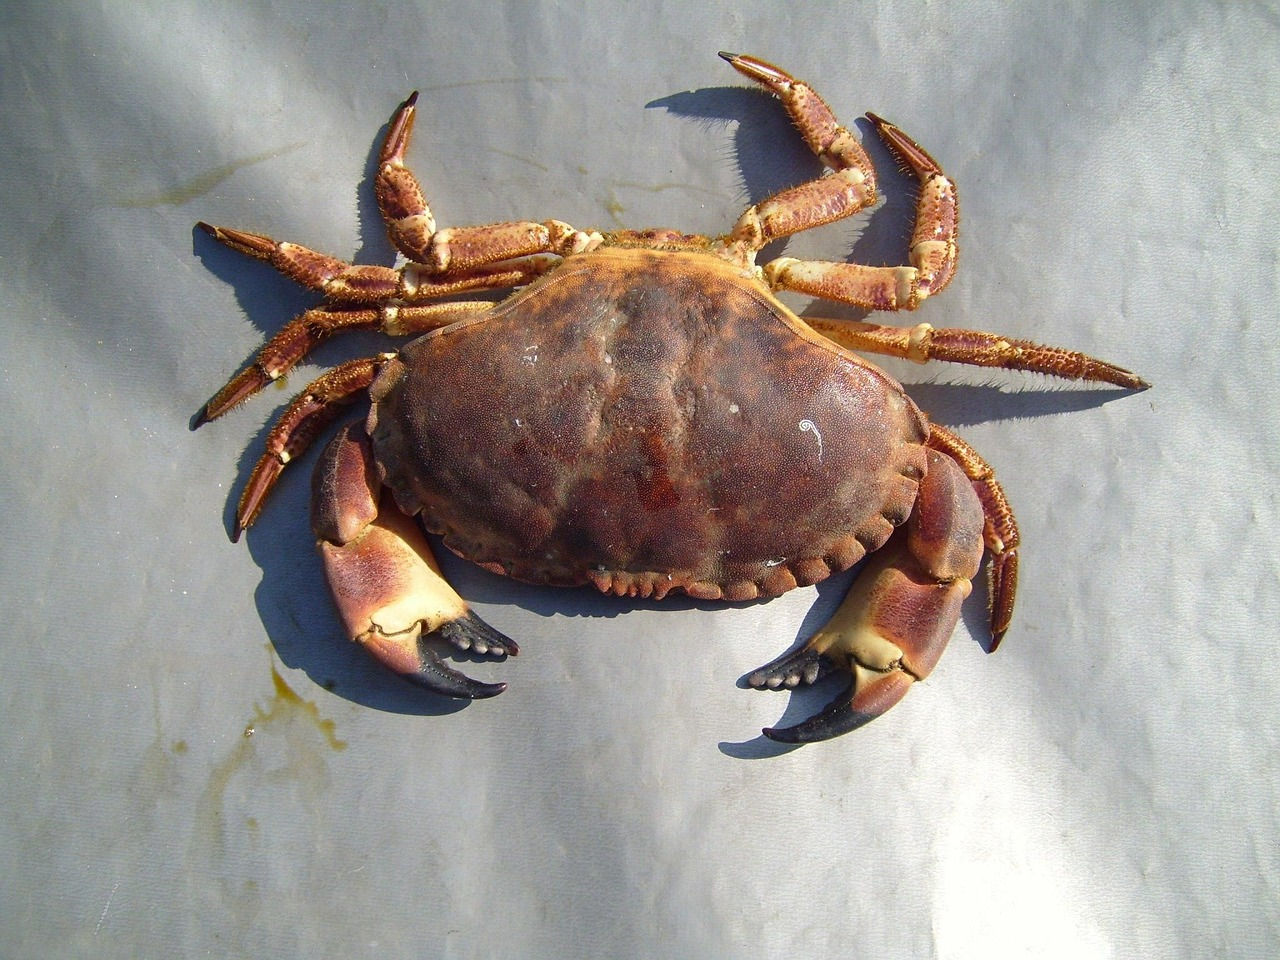 crab arthropods lobsters free photo